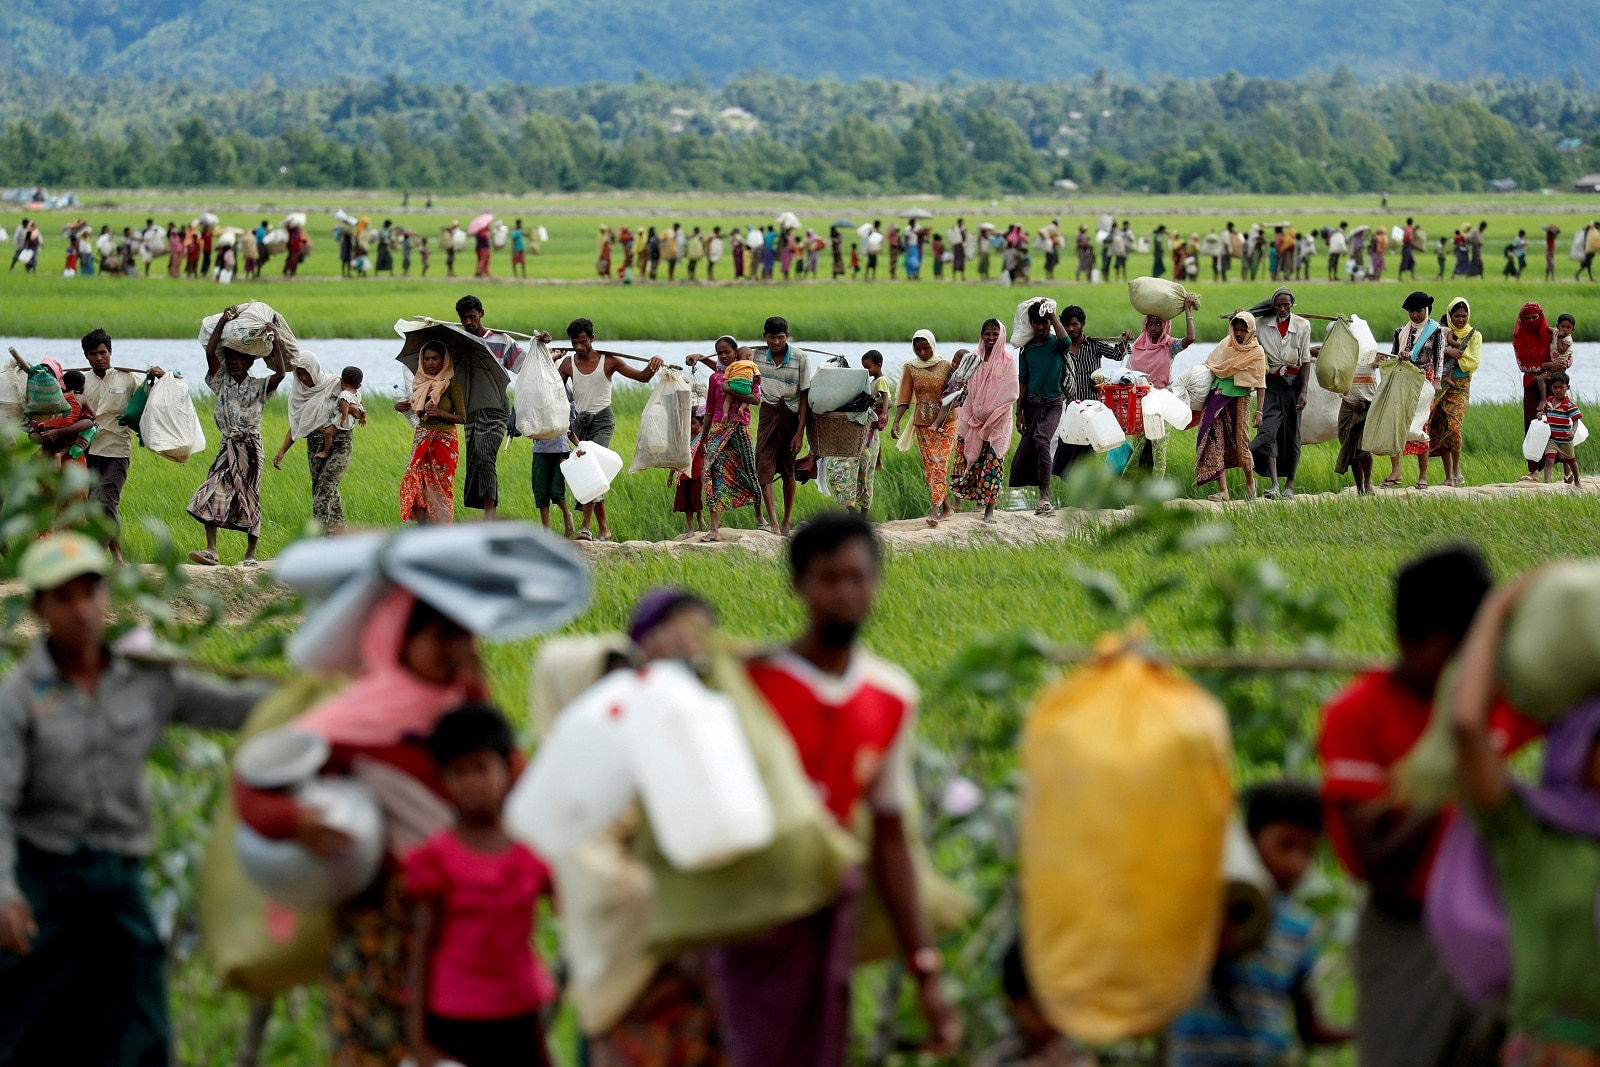 Rohingya refugees, who crossed the border from Myanmar two days before, walk after they received permission from the Bangladeshi army to continue on to the refugee camps, in Palang Khali, near Cox's Bazar, Bangladesh October 19, 2017. REUTERS/Jorge Silva/File Photo